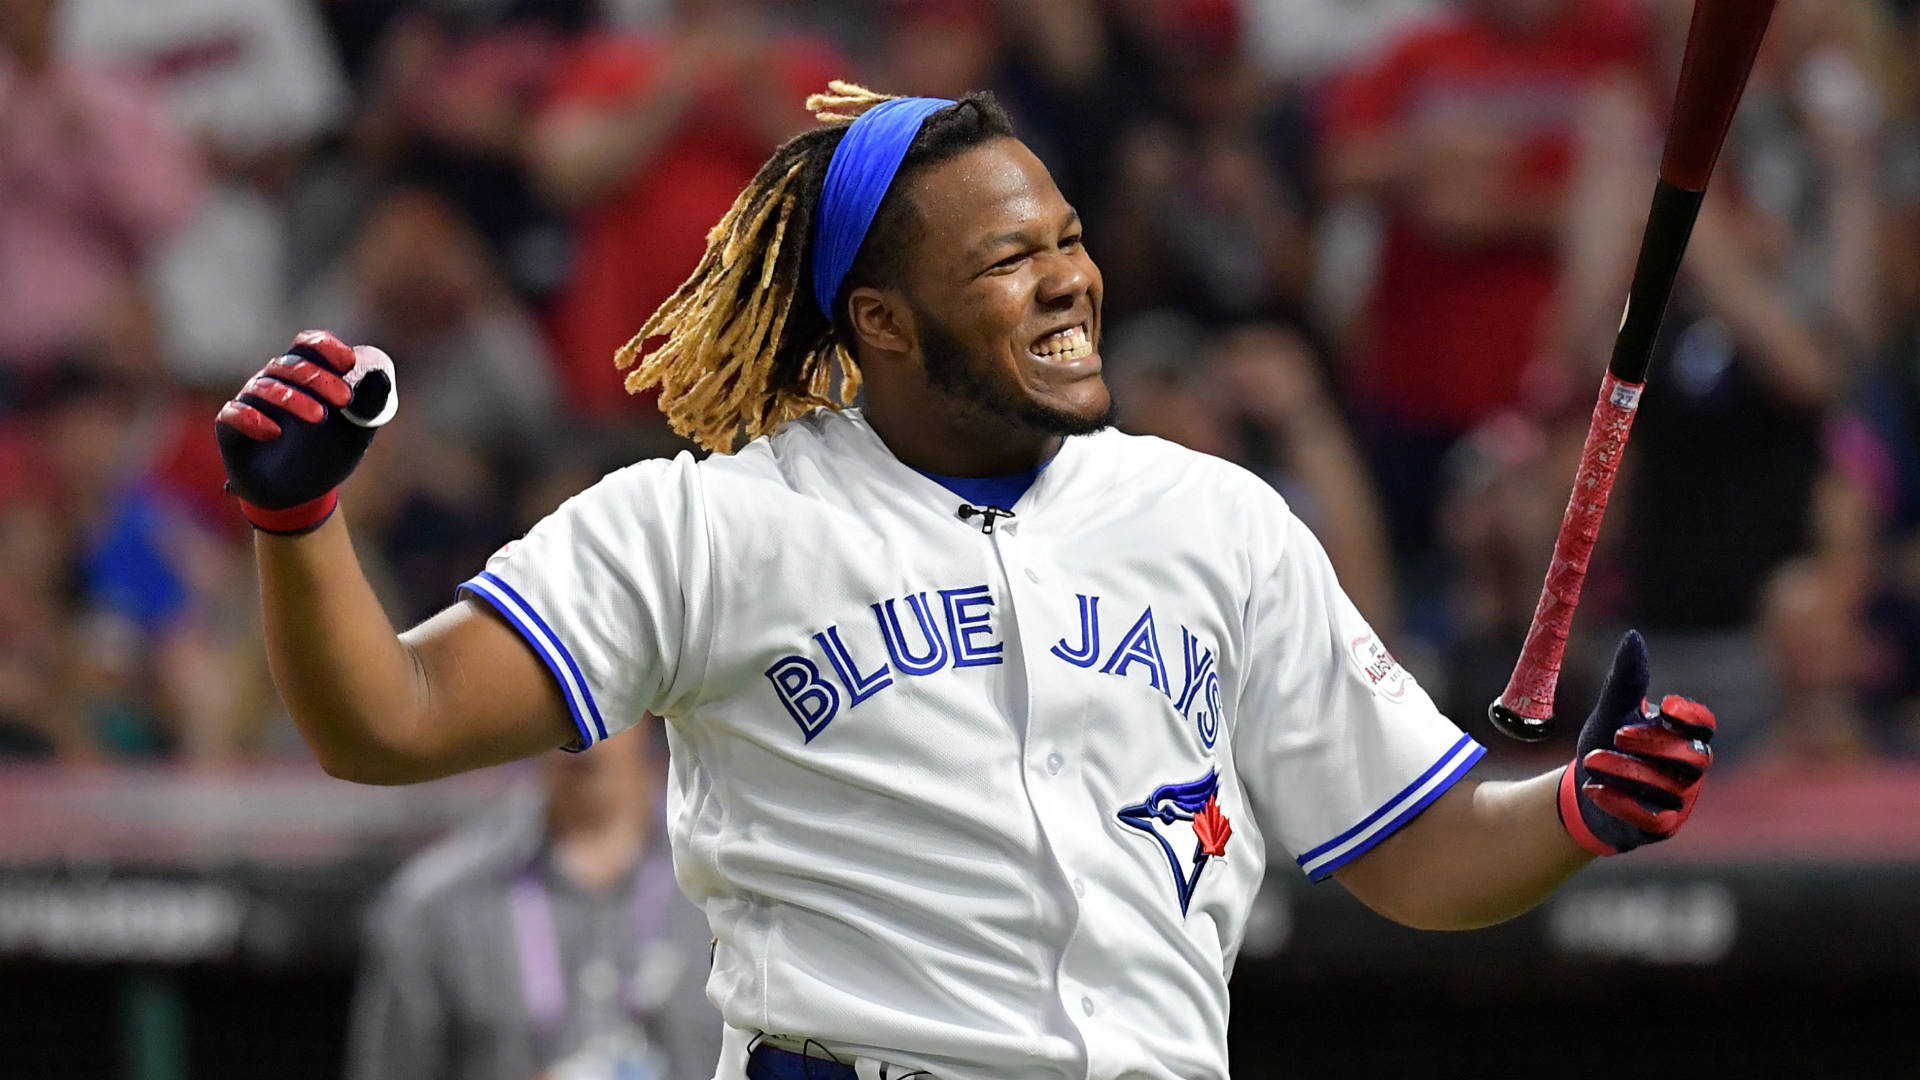 Vladimir Guerrero Jr. working to get leaner, 'play 150 games' for Toronto Blue Jays this season